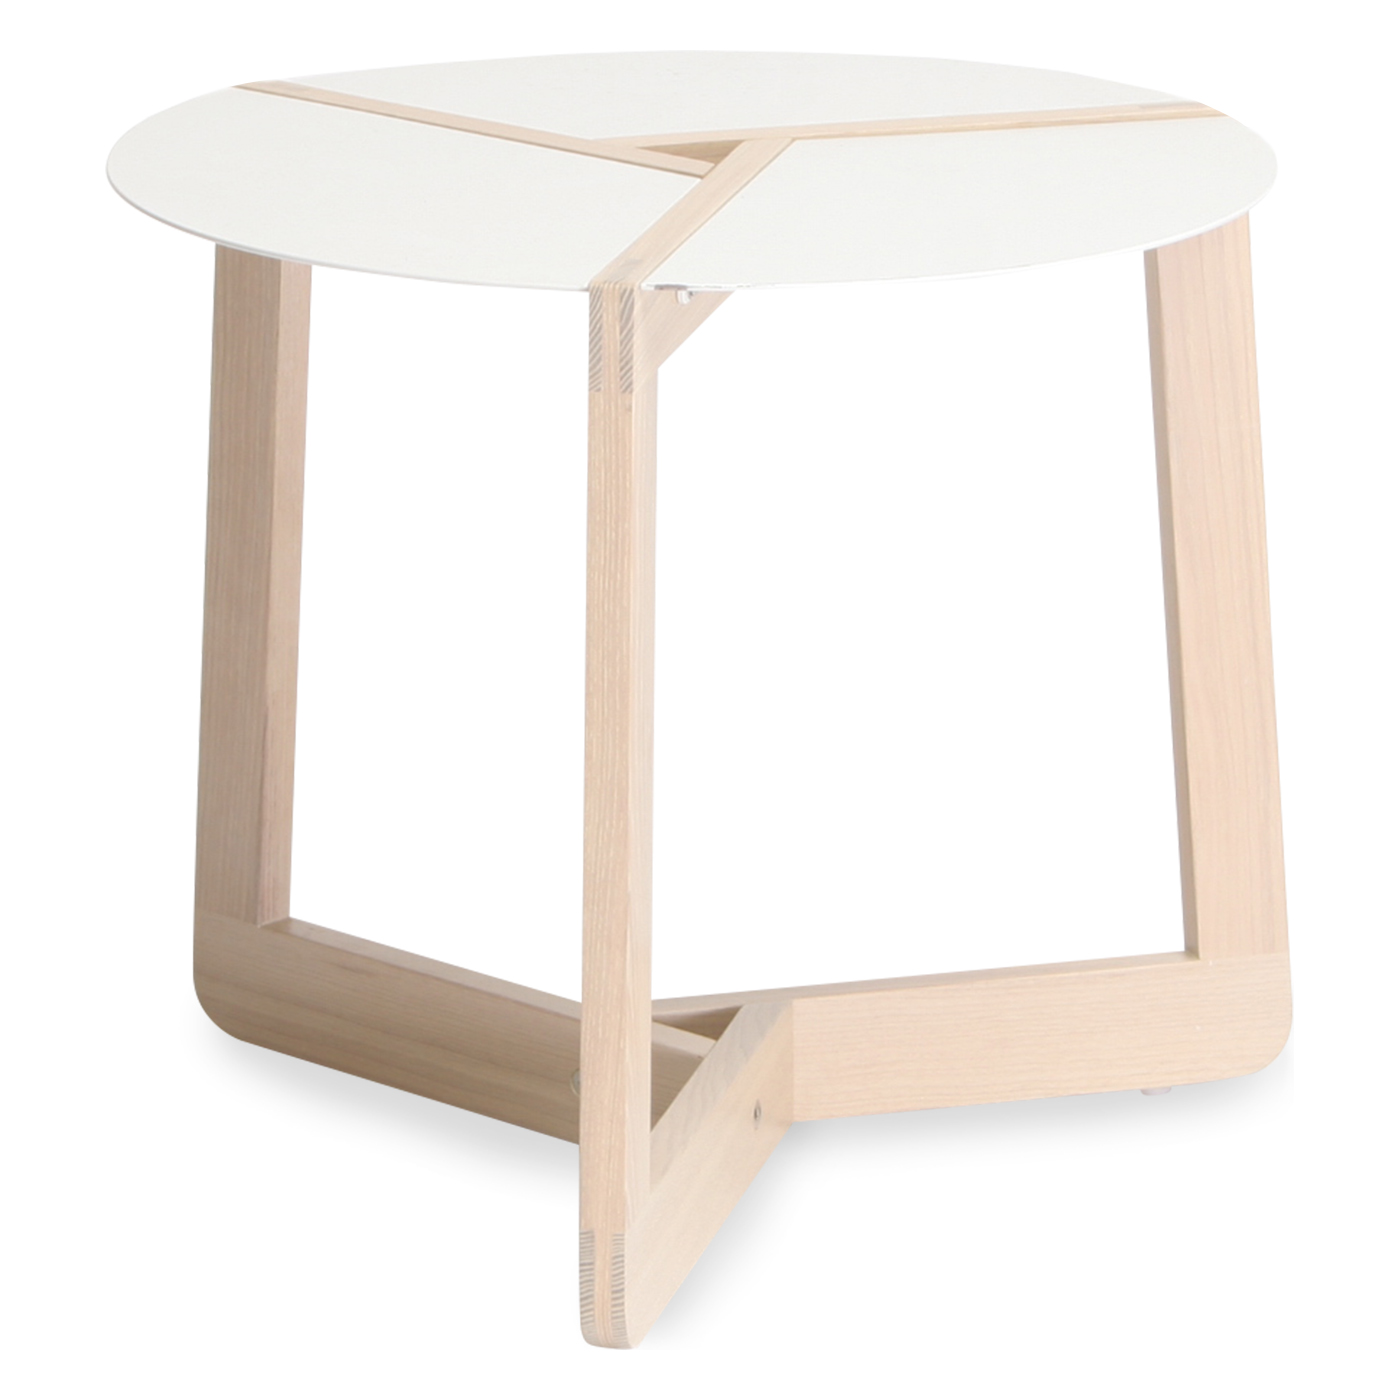 traditional small white side table round blu dot accent telephone antique end tables coffee kitchen and chairs extra wide carpet threshold strip dining diy sliding door hardware